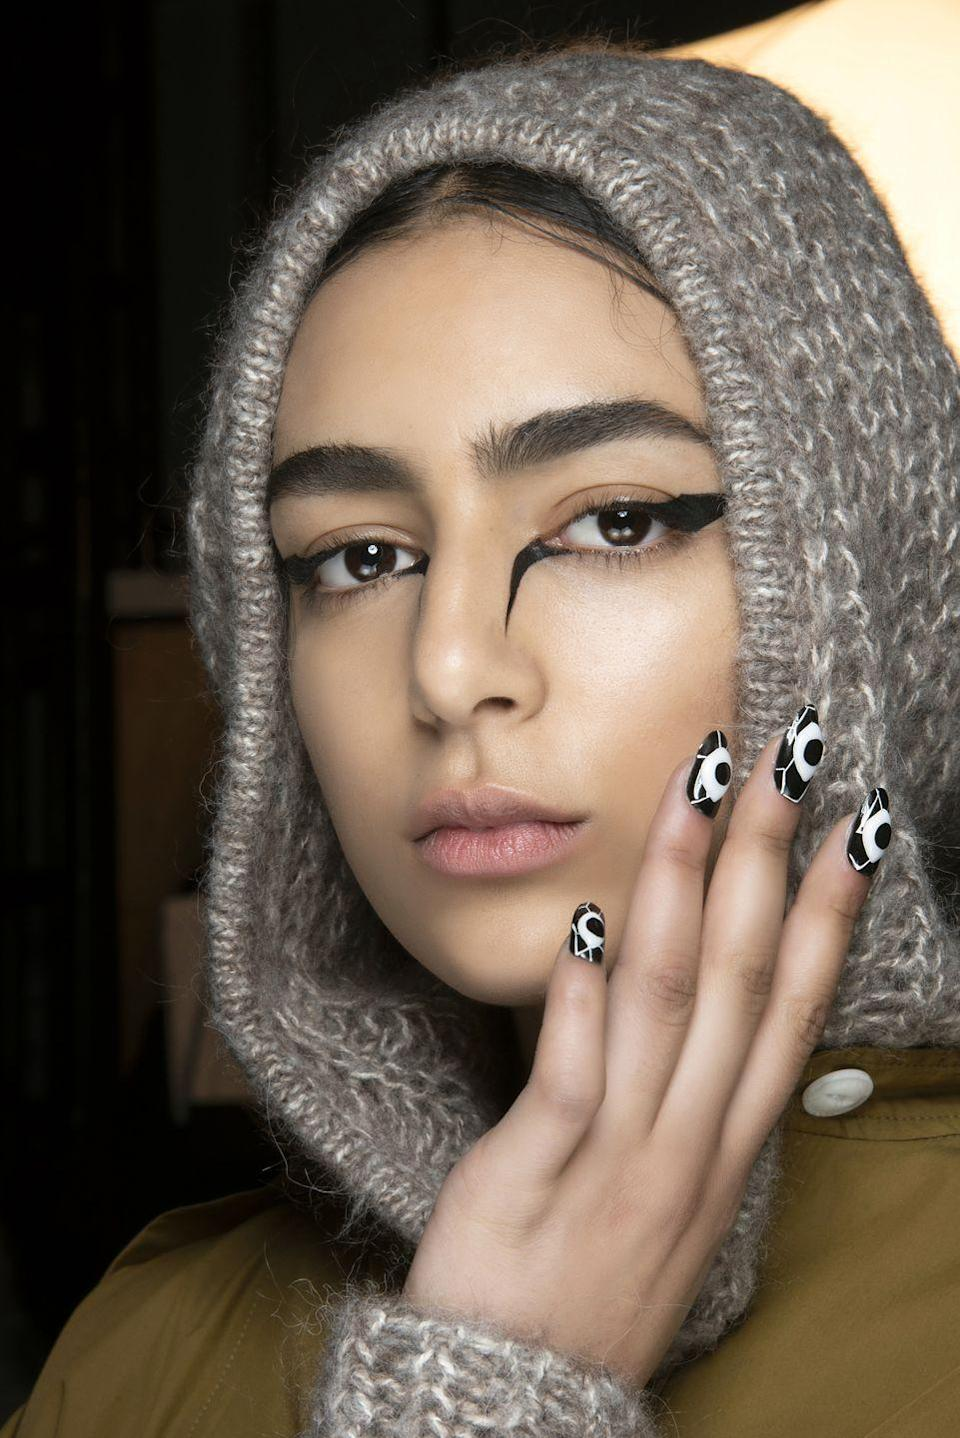 <p>Backstage at Rag and Bone's fall show, models showed off just how cool a black and white graphic manicure can look.</p>